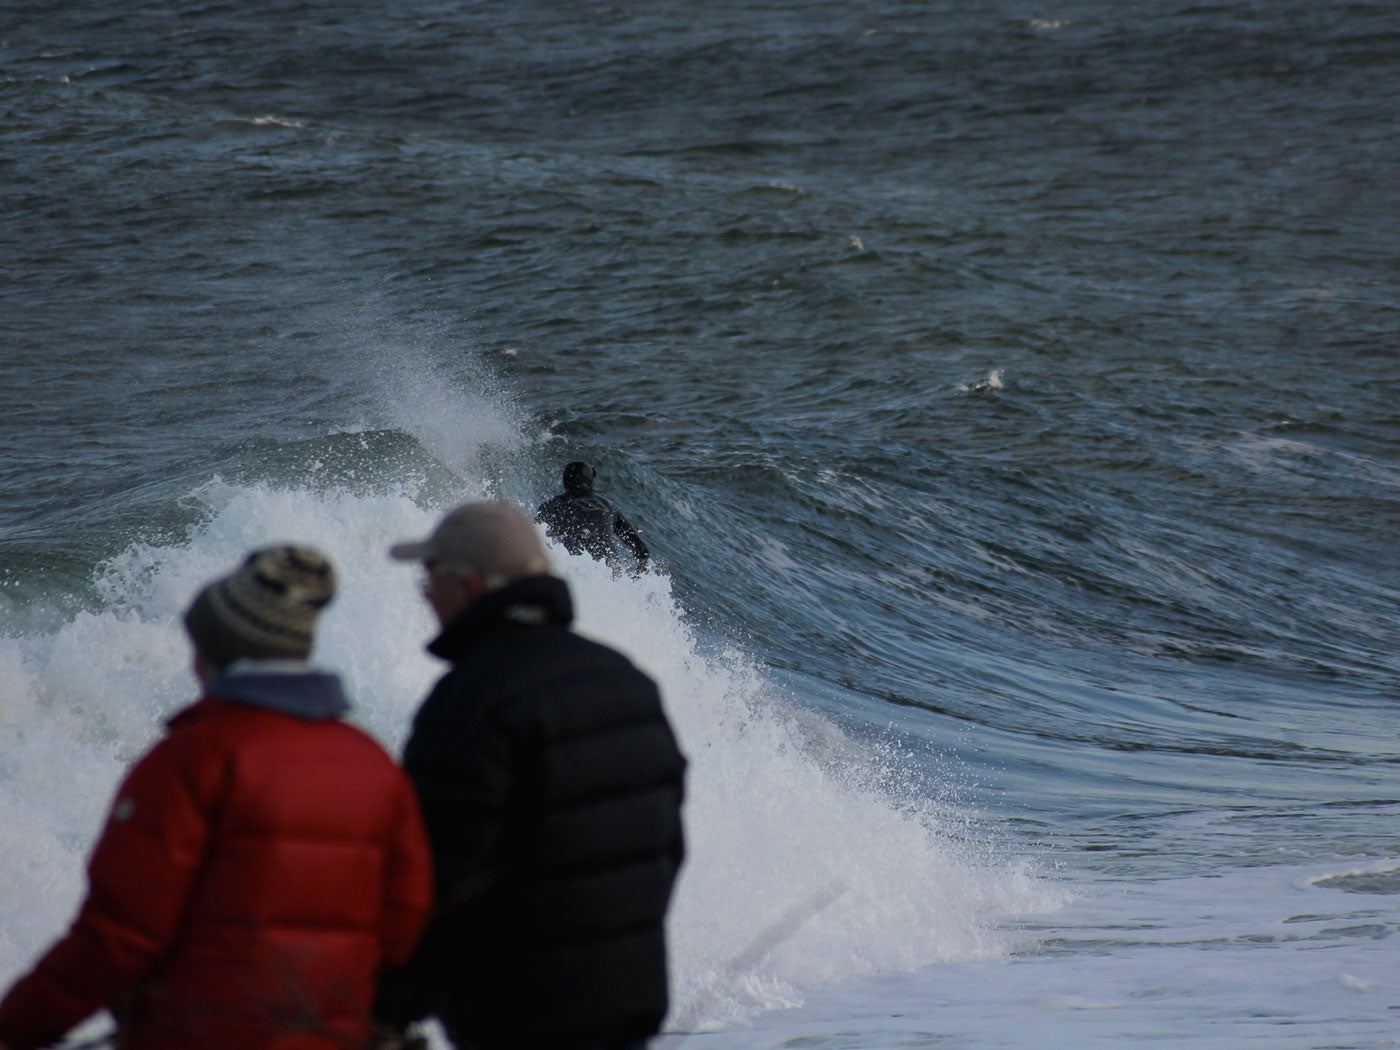 coldwater surfing in scandinavia